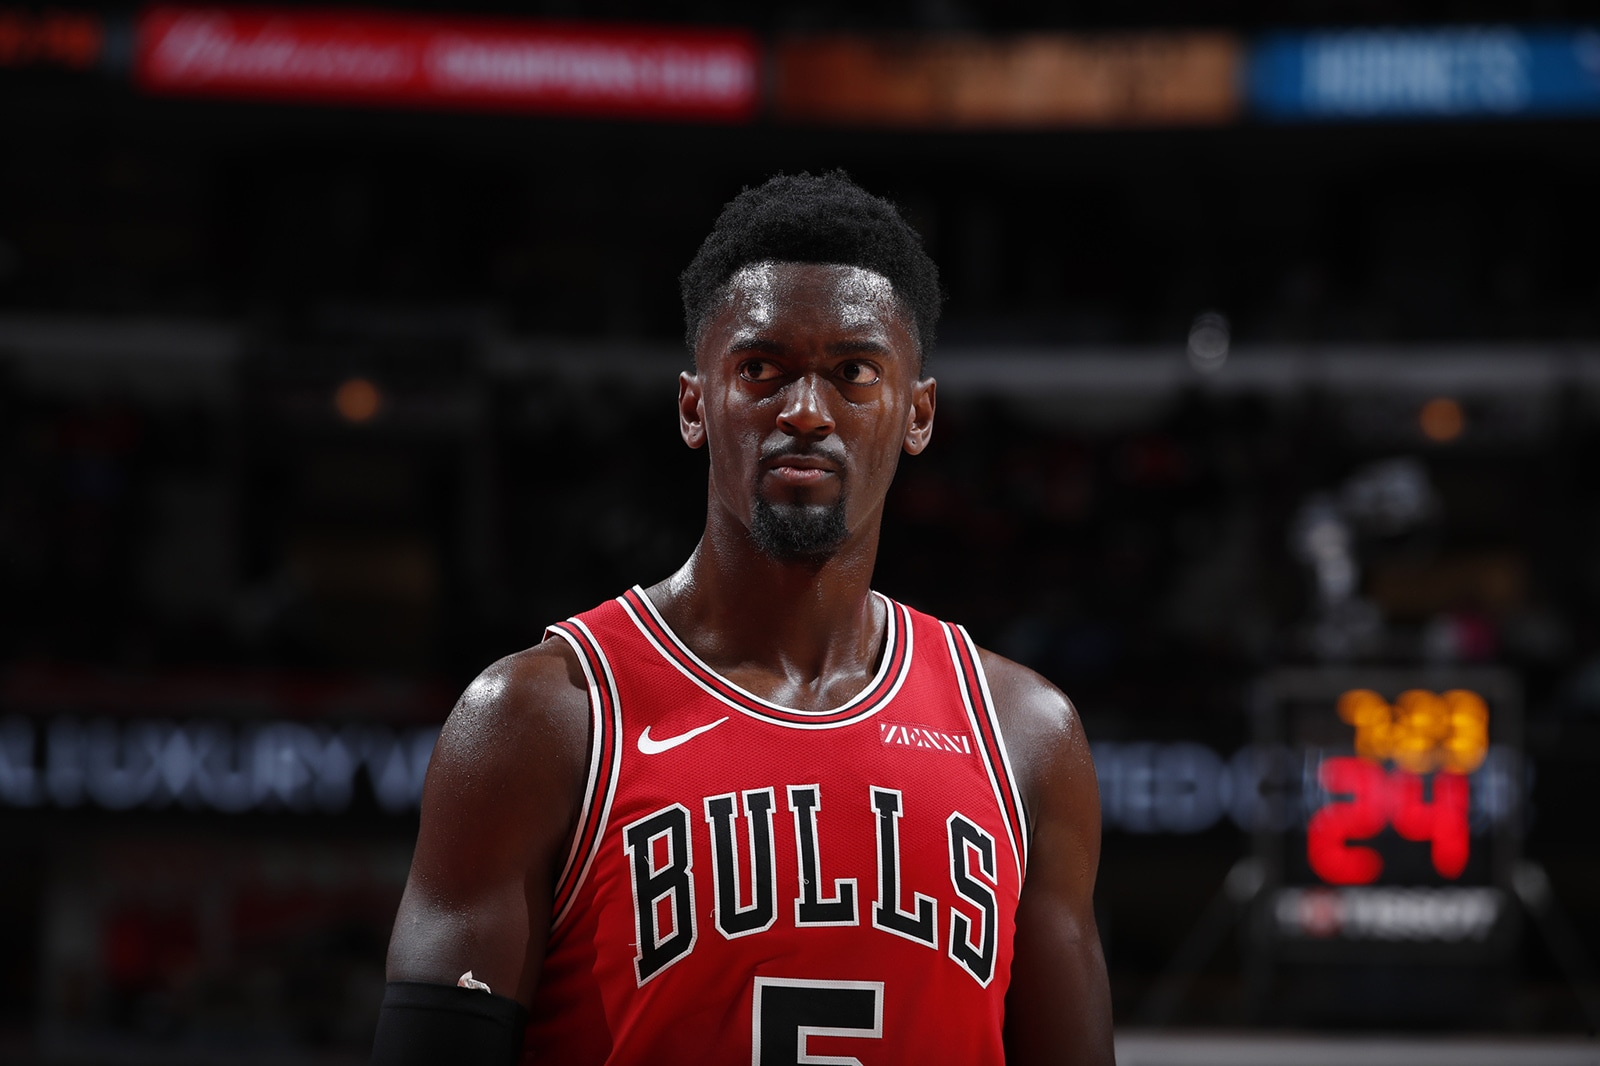 Bobby Portis pictured during the game against the Hornets